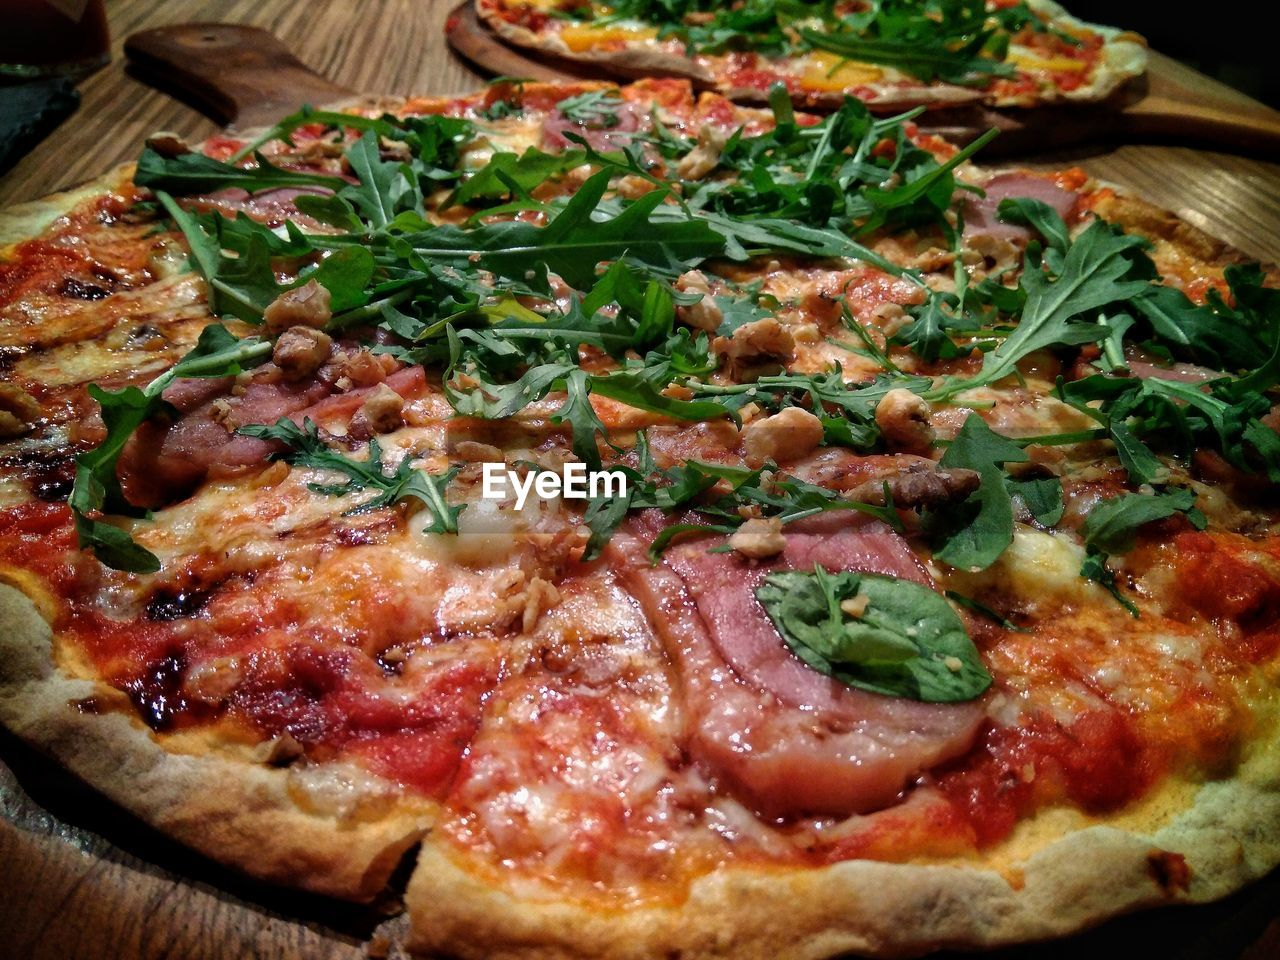 pizza, food and drink, food, freshness, unhealthy eating, ready-to-eat, indoors, still life, close-up, cheese, no people, vegetable, dairy product, table, italian food, herb, high angle view, meat, fast food, serving size, garnish, arugula, temptation, snack, pepperoni